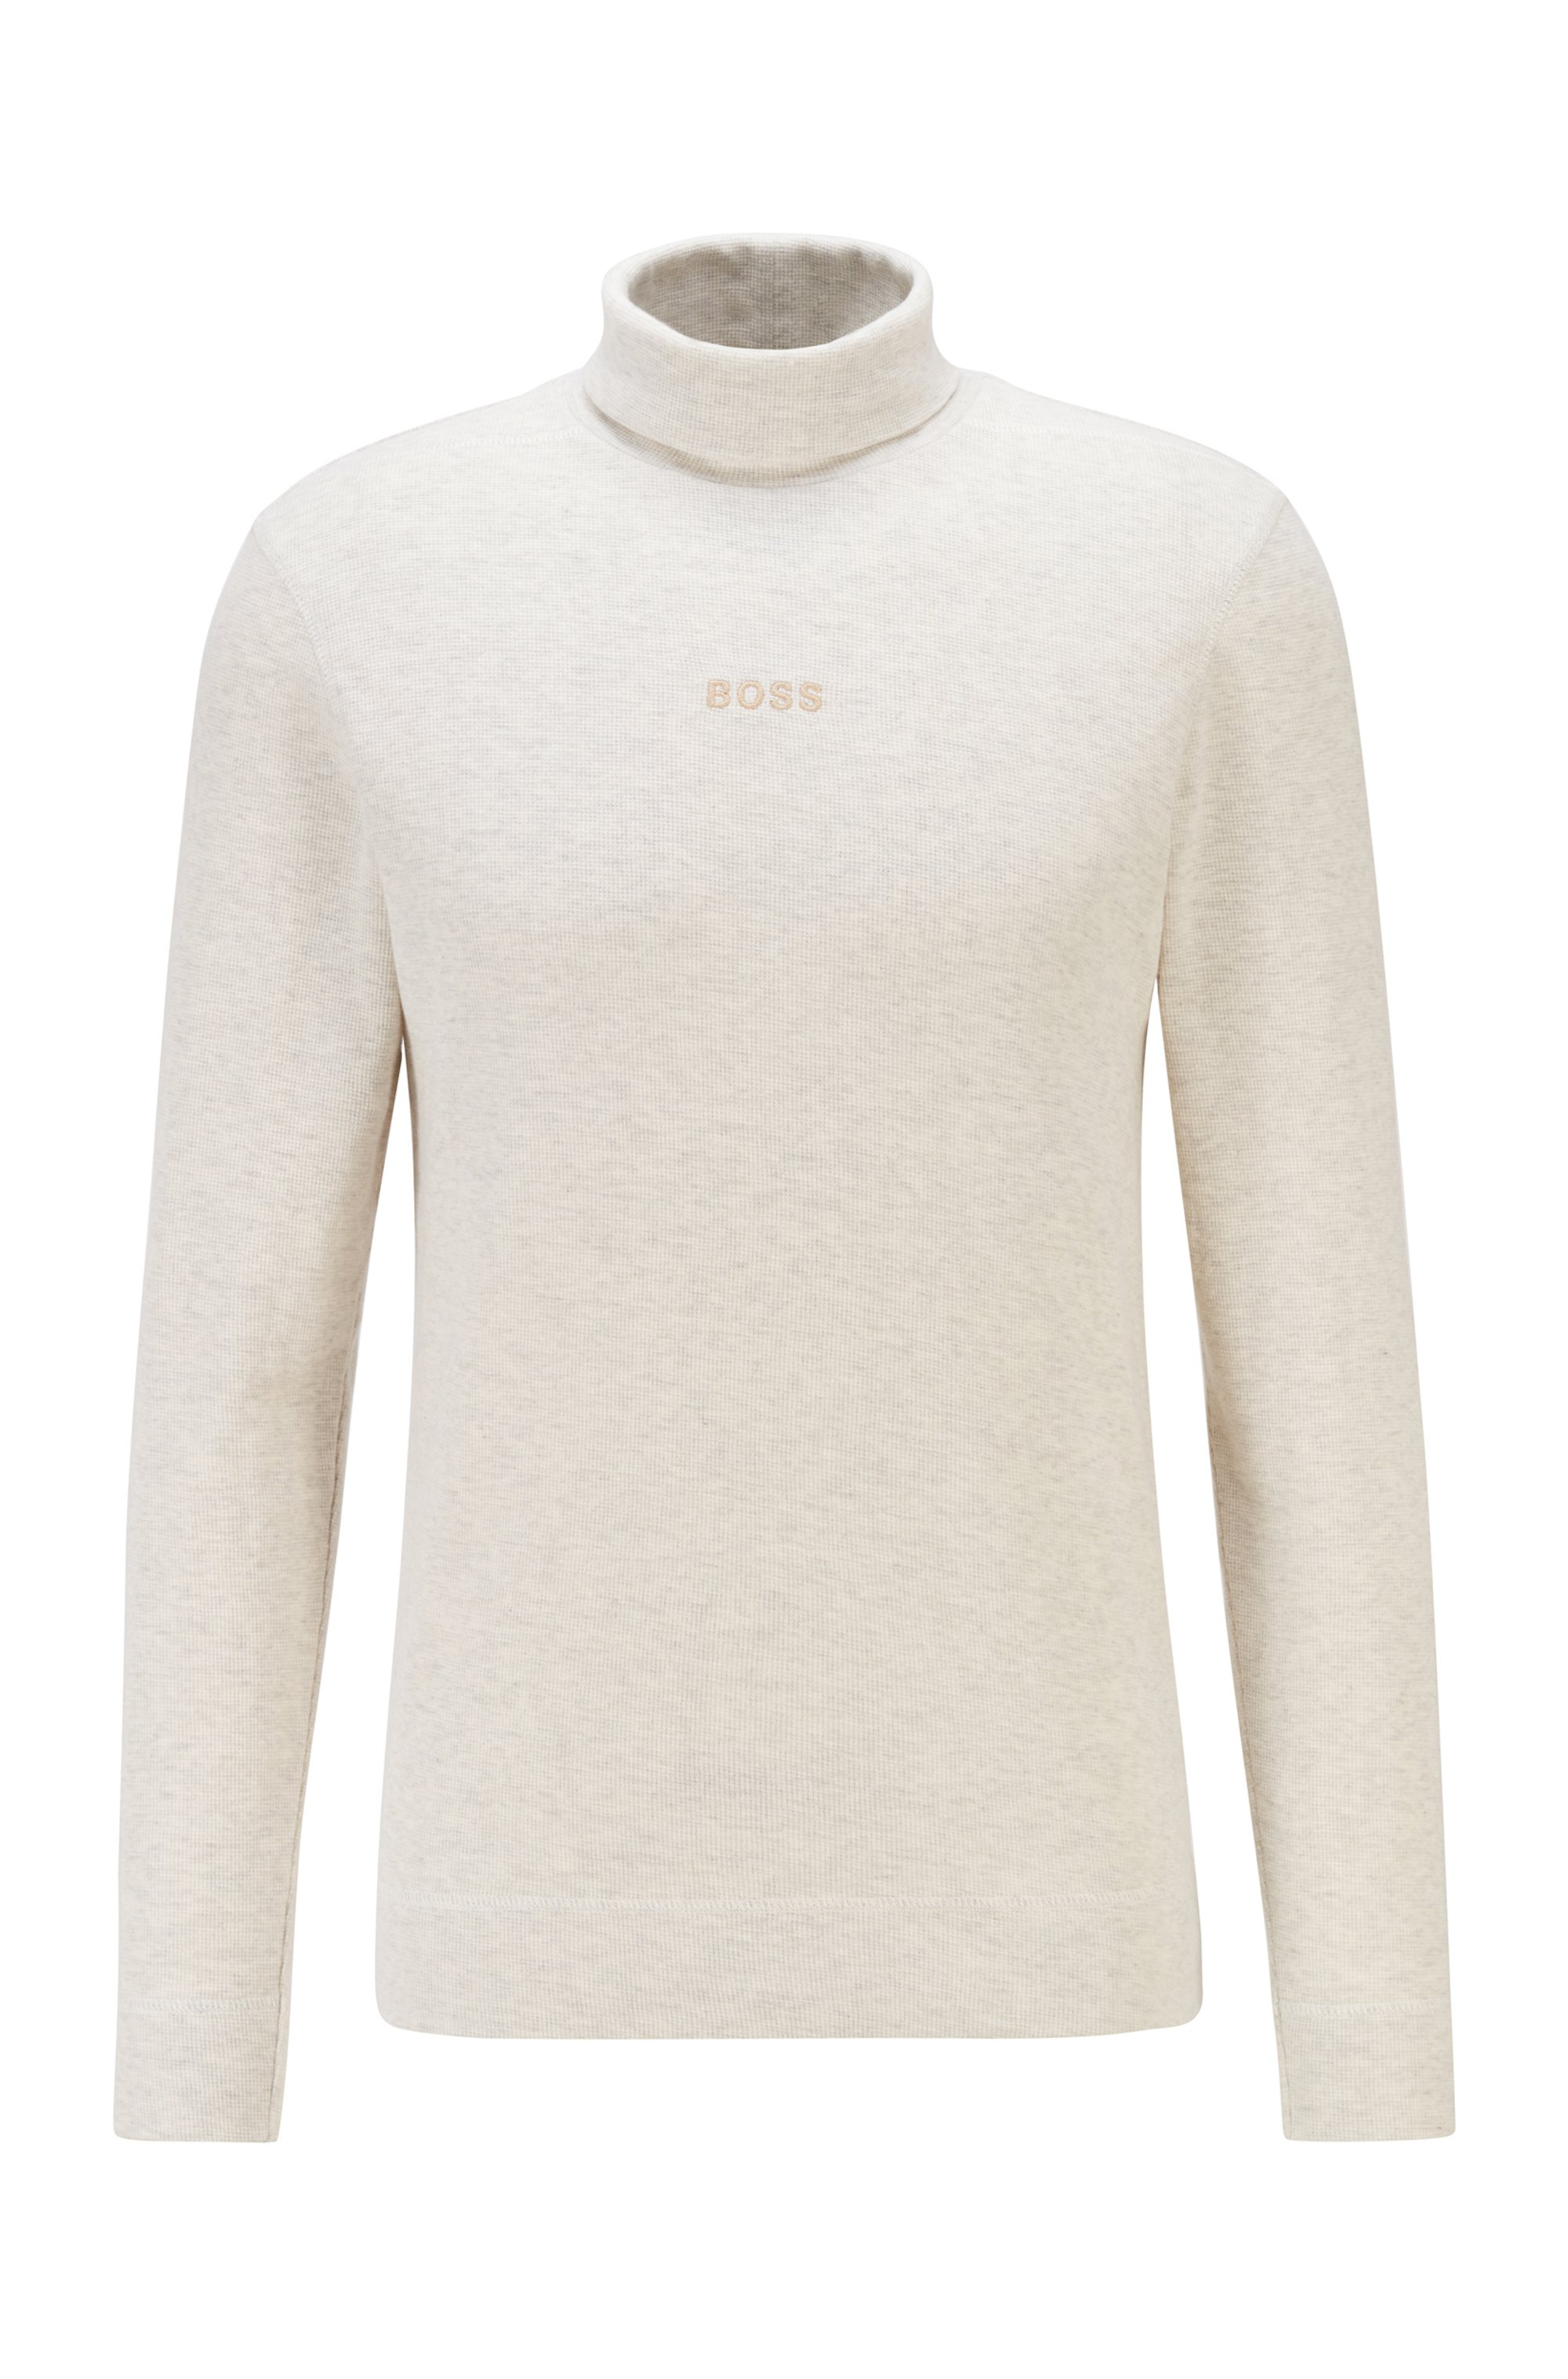 Logo-embroidered high-neck T-shirt in structured melange cotton, White